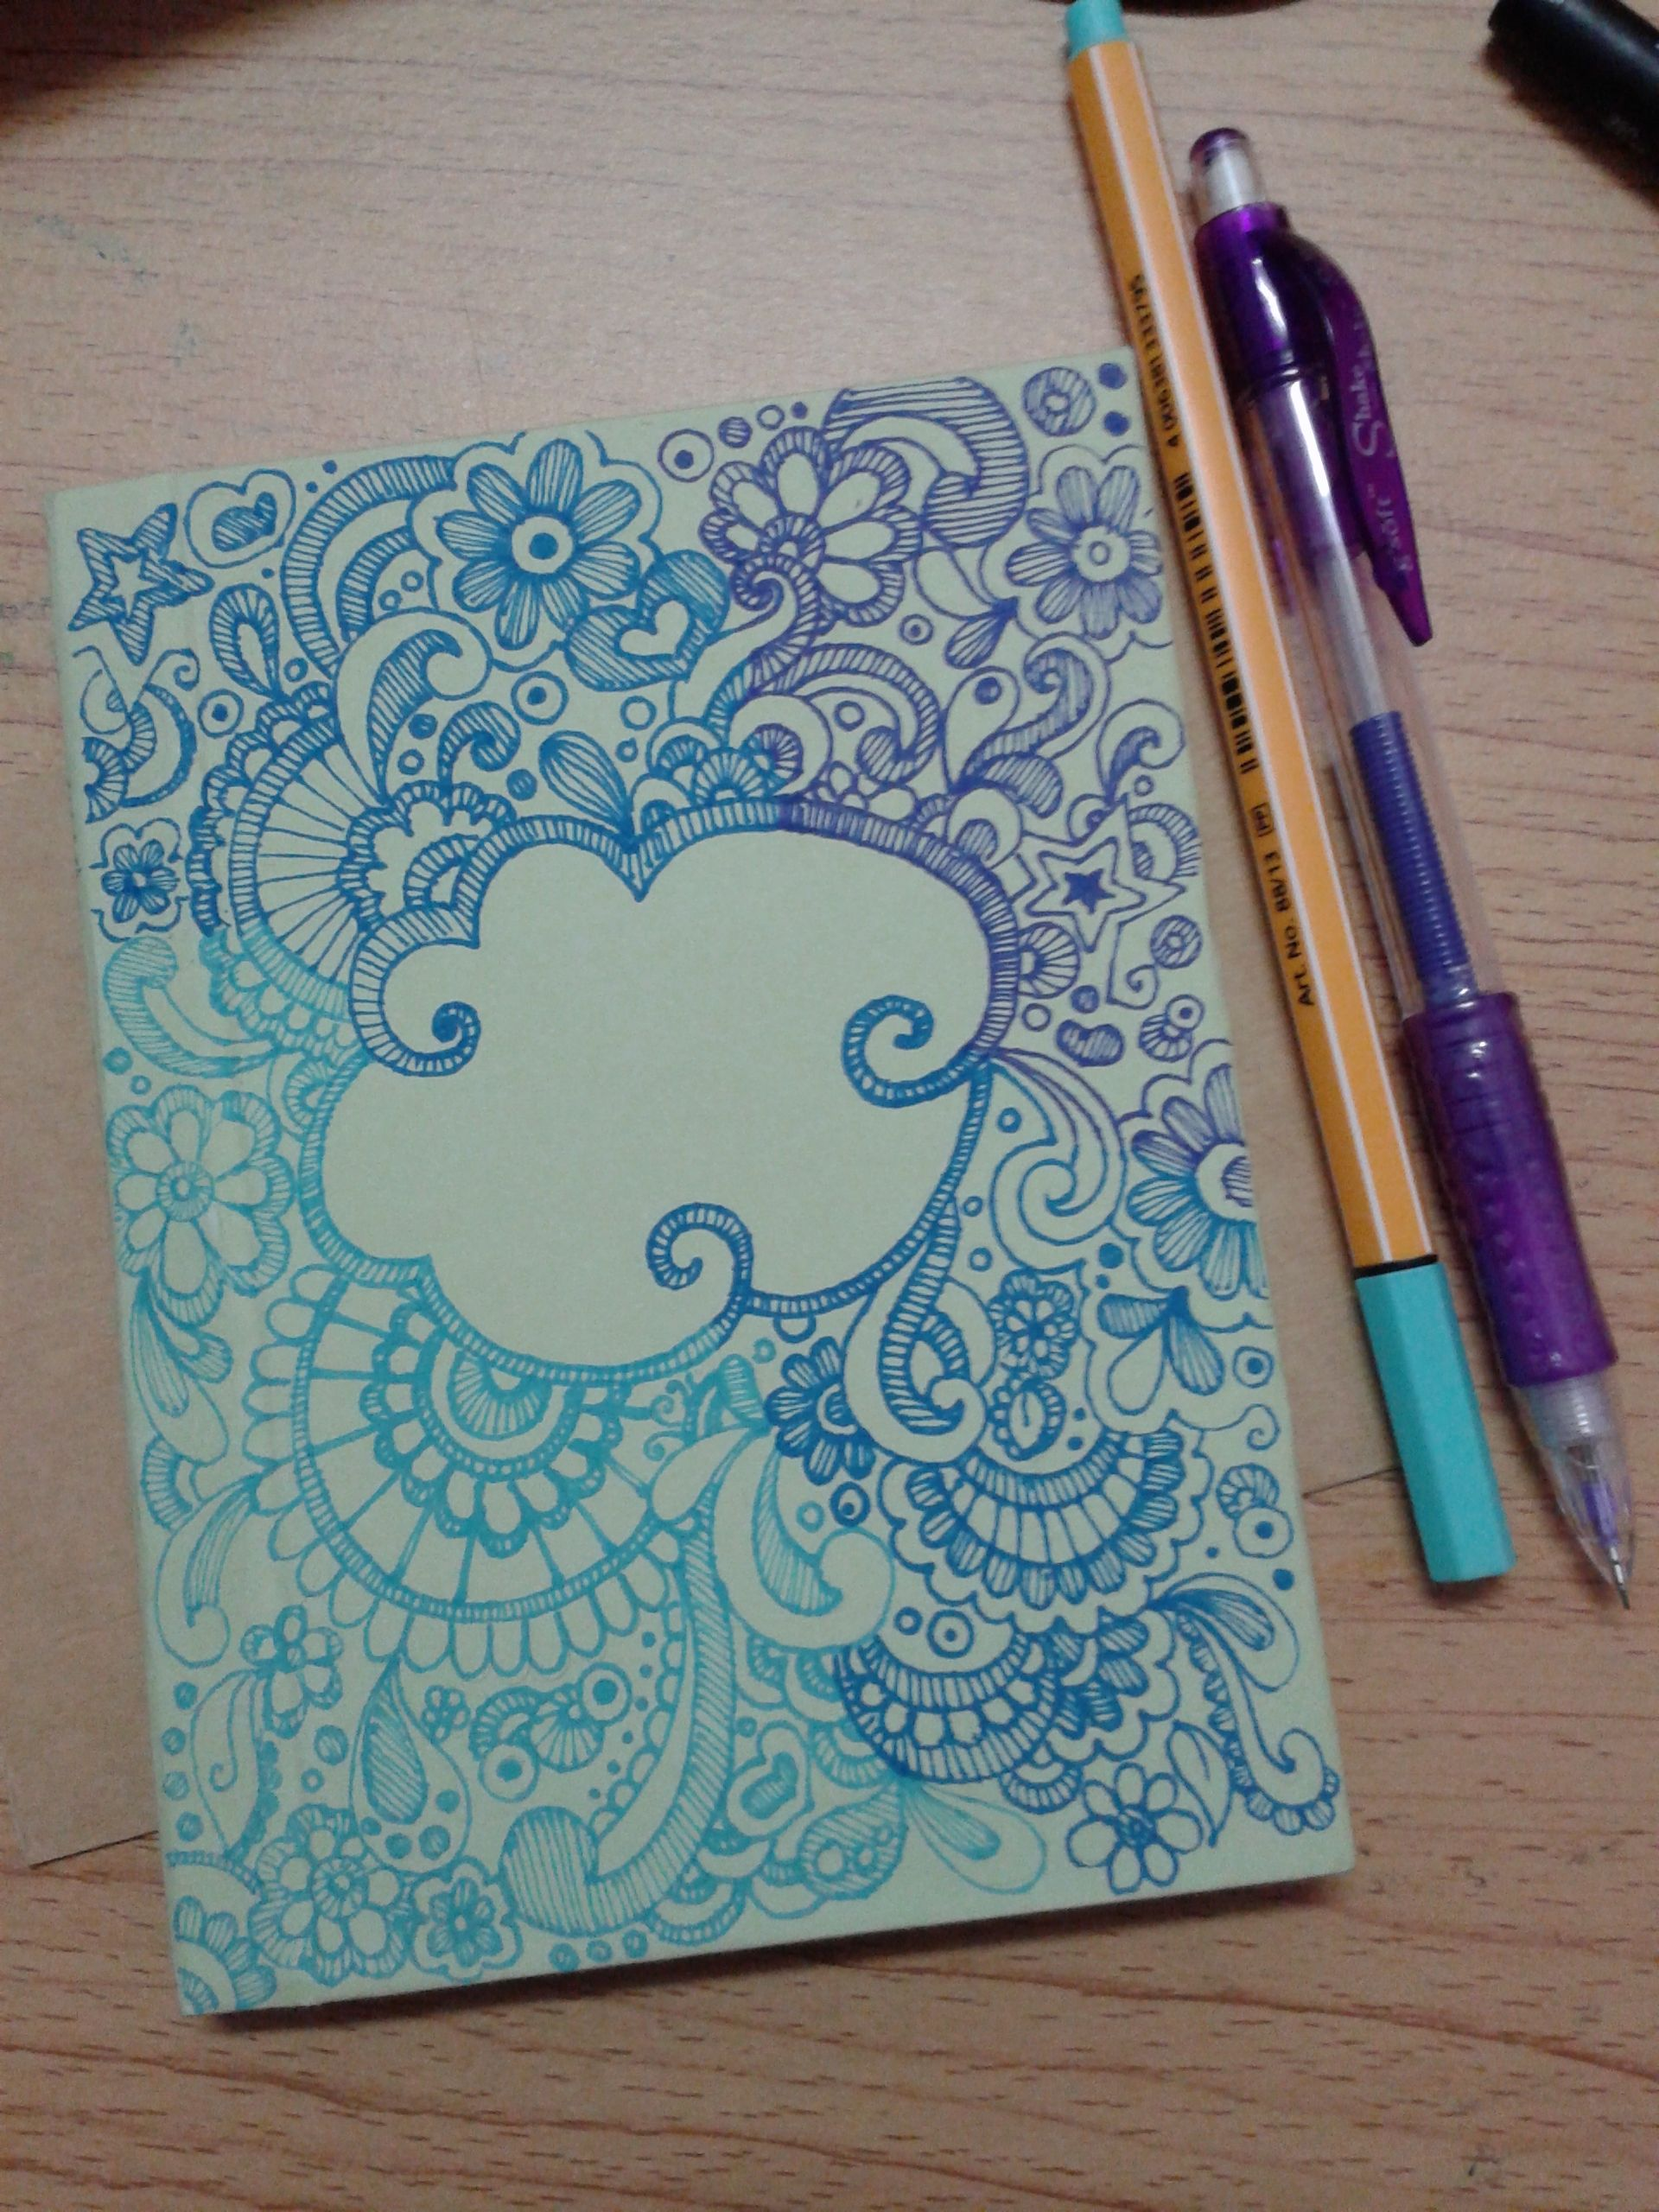 Book Cover Ideas Tumblr : Doodle for diy notebook cover my work pinterest